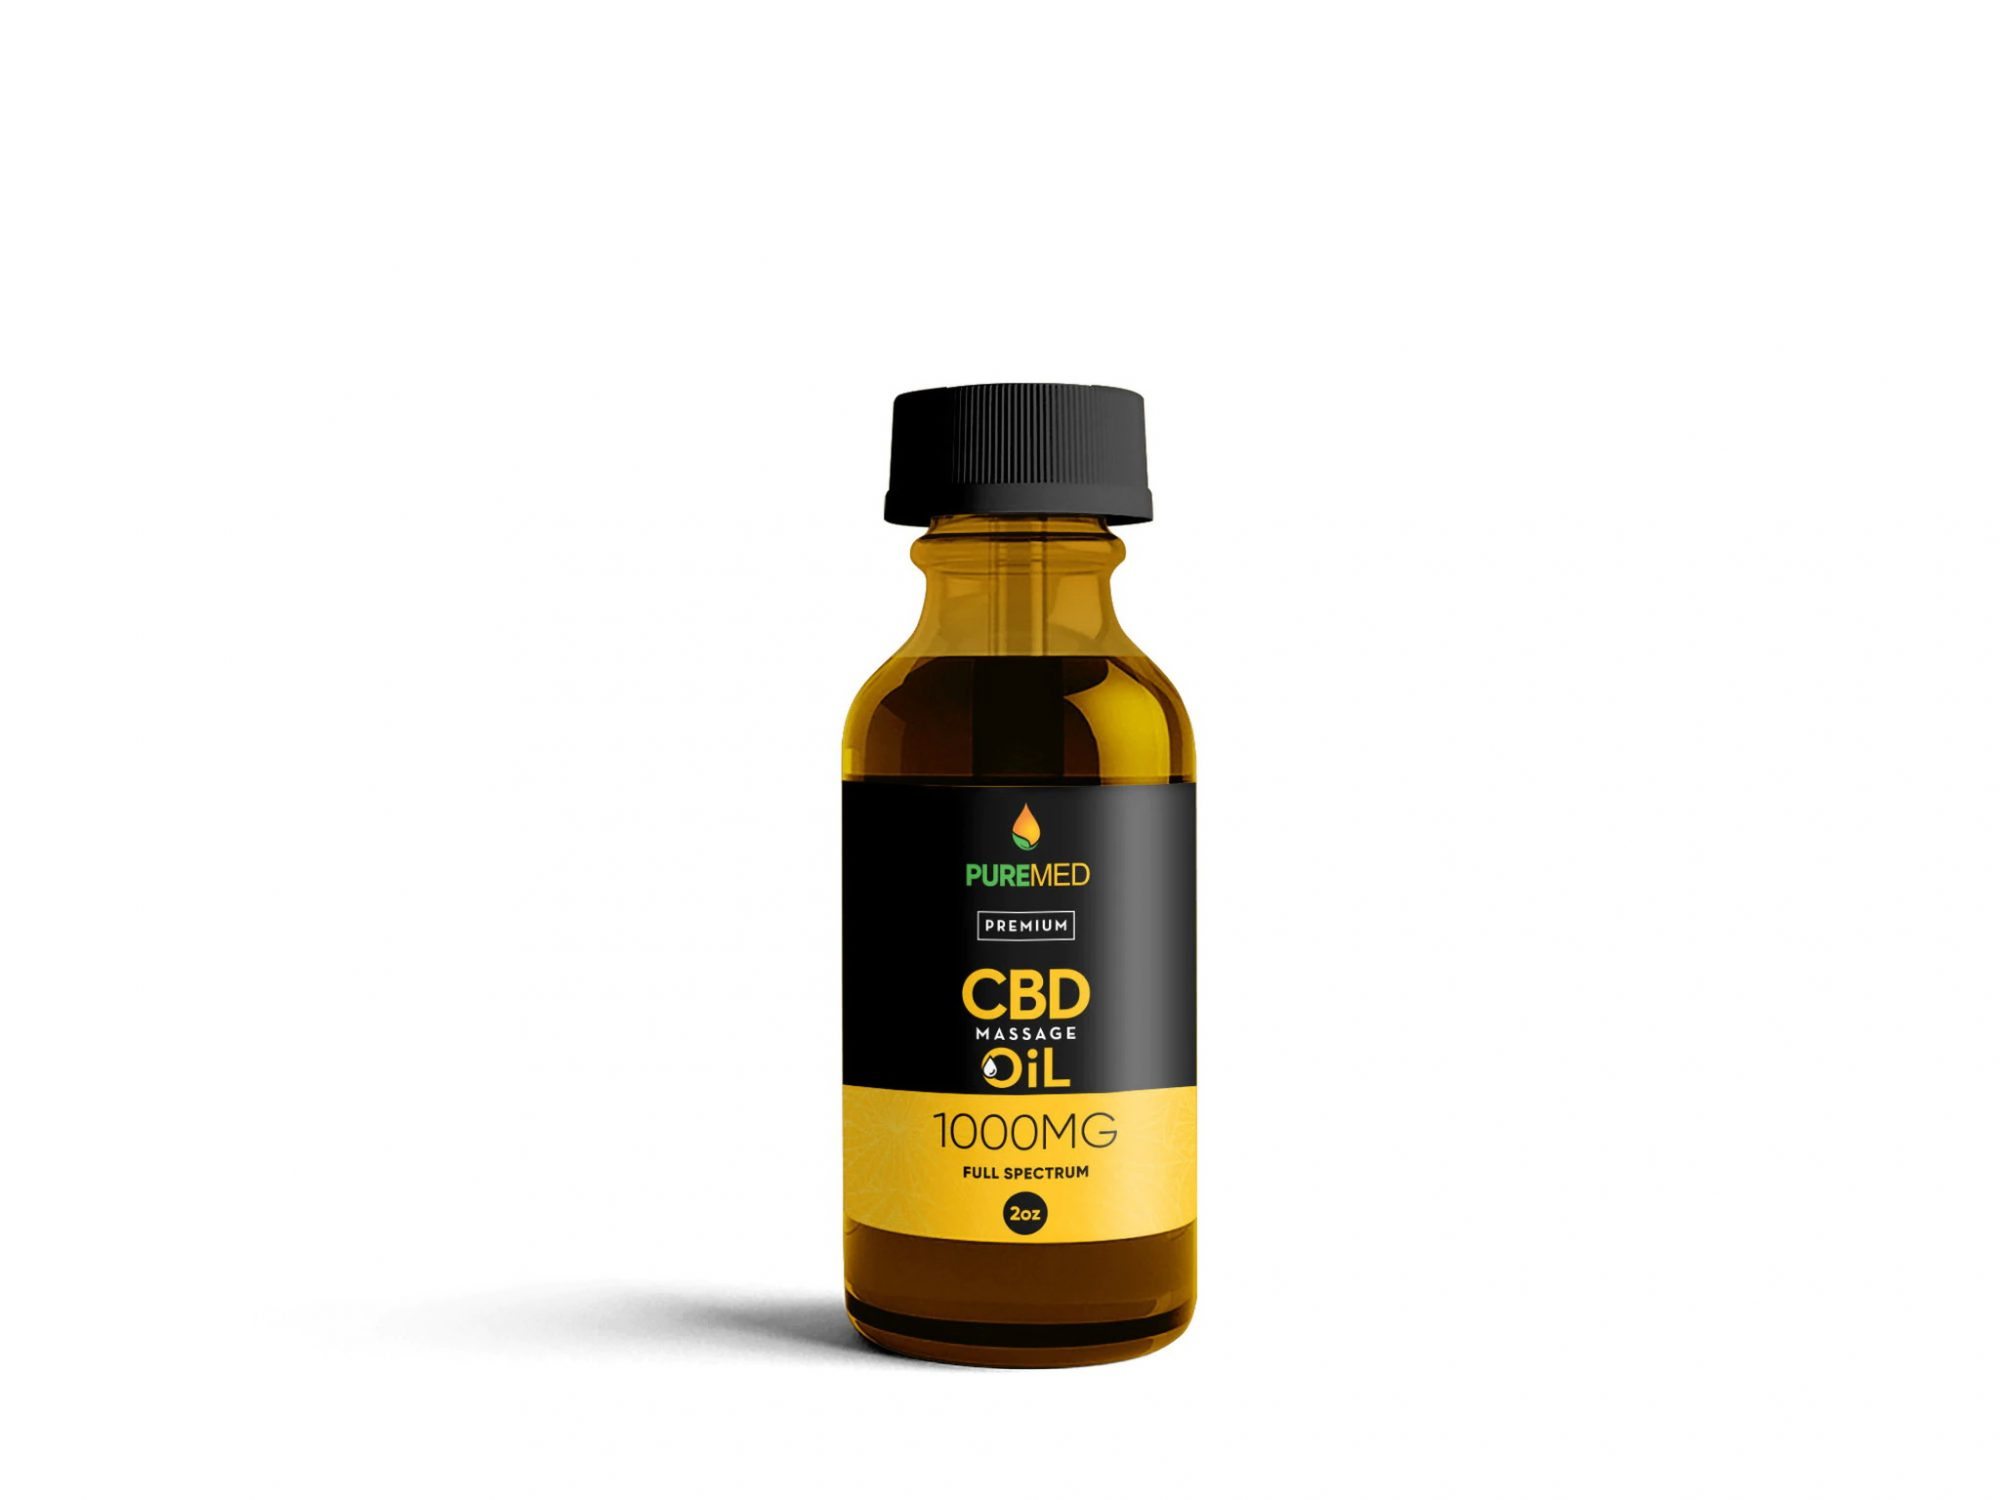 13 source 1552428617 - CBD Massage Oil 1000mg